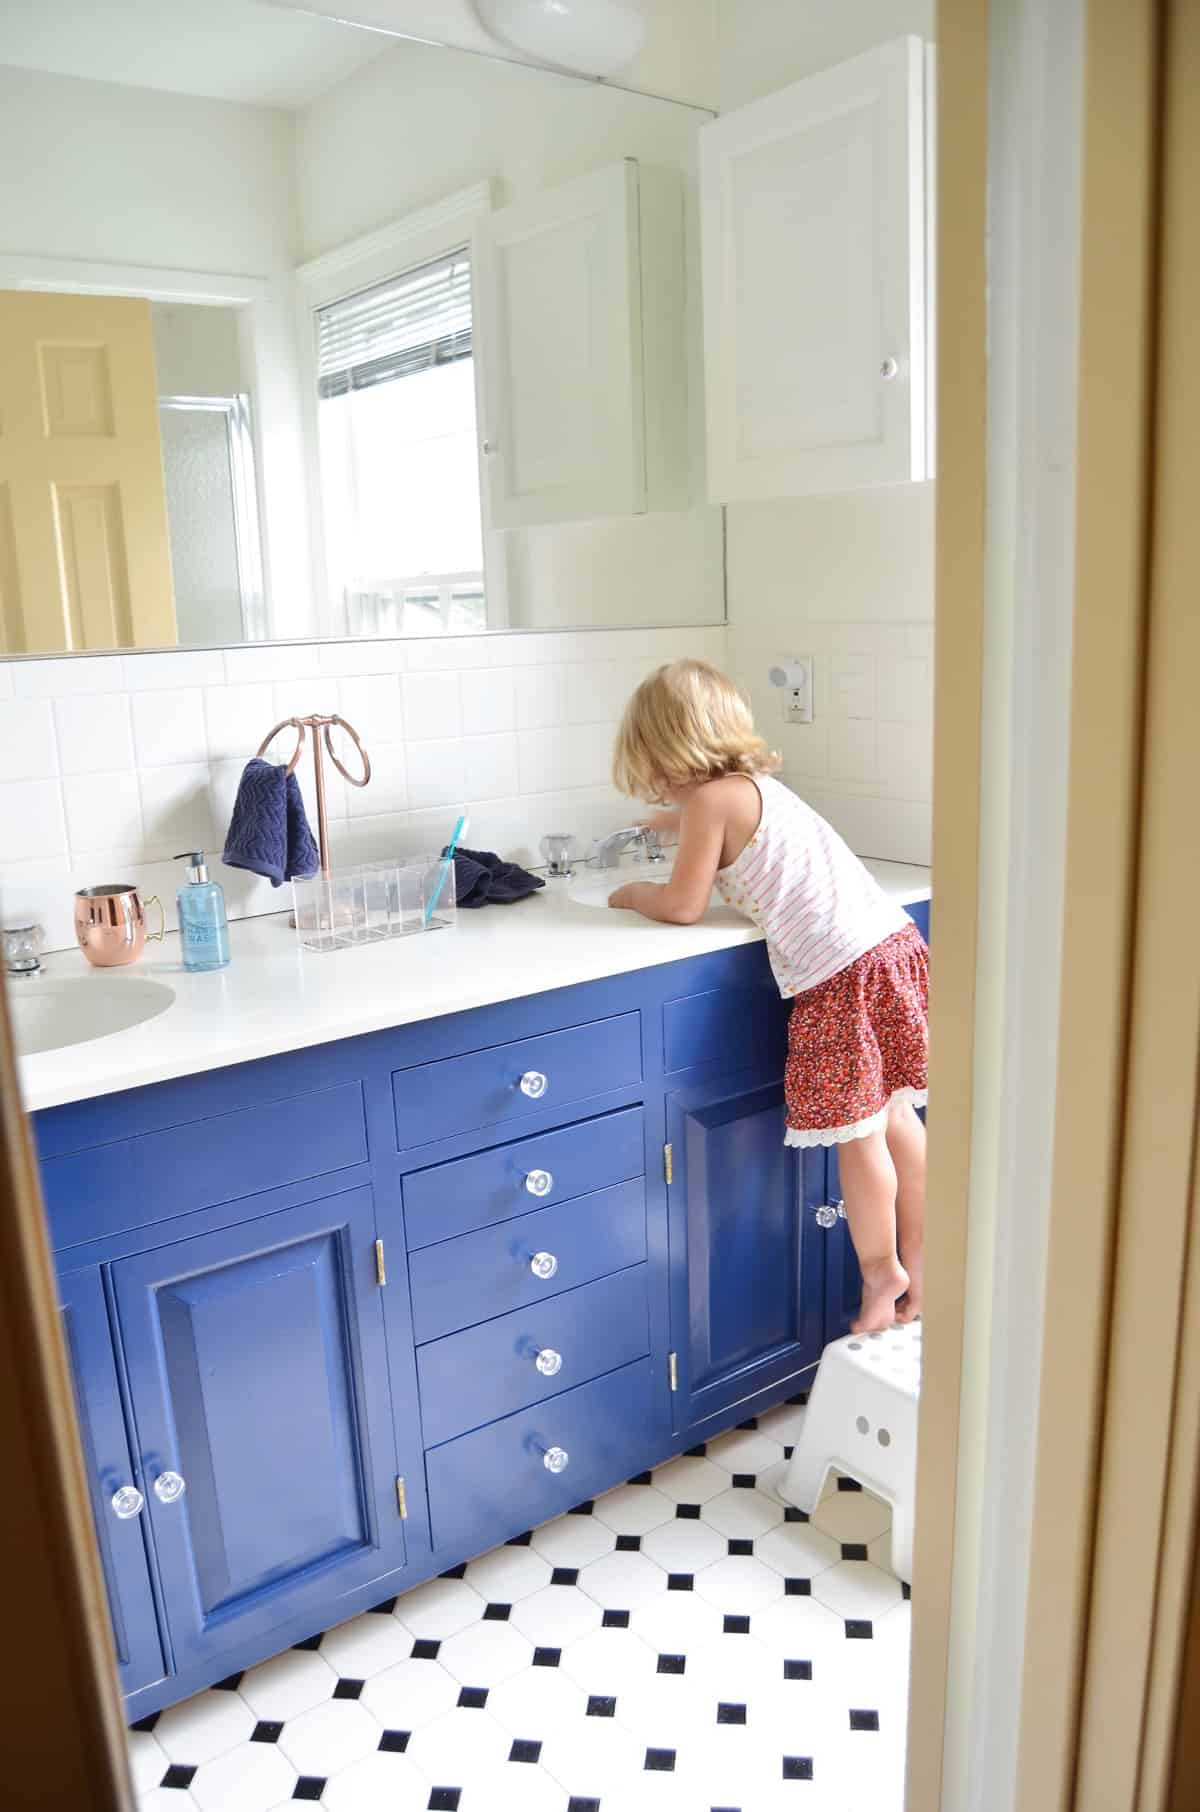 Repainting a basic white vanity with navy blue Satin Enamel paint for an easy bathroom makeover